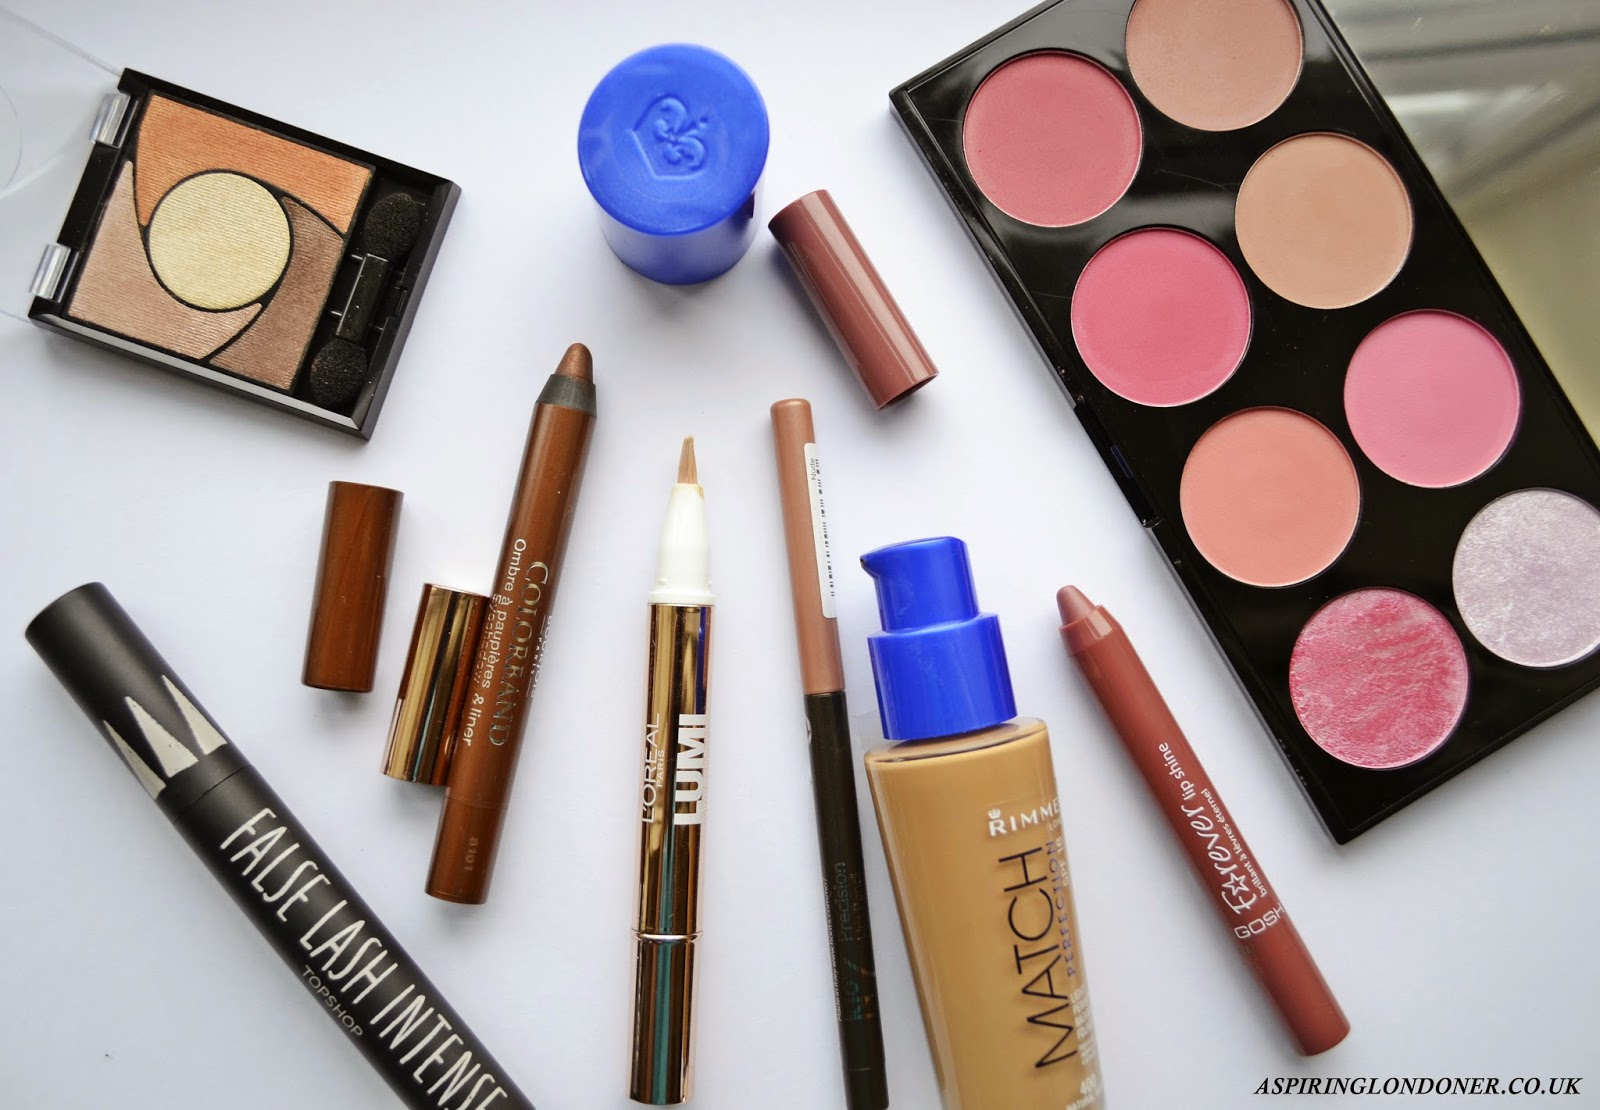 10 under £10 Drugstore Makeup Review ft Topshop, Bourjois, GOSH, Rimmel - Aspiring Londoner